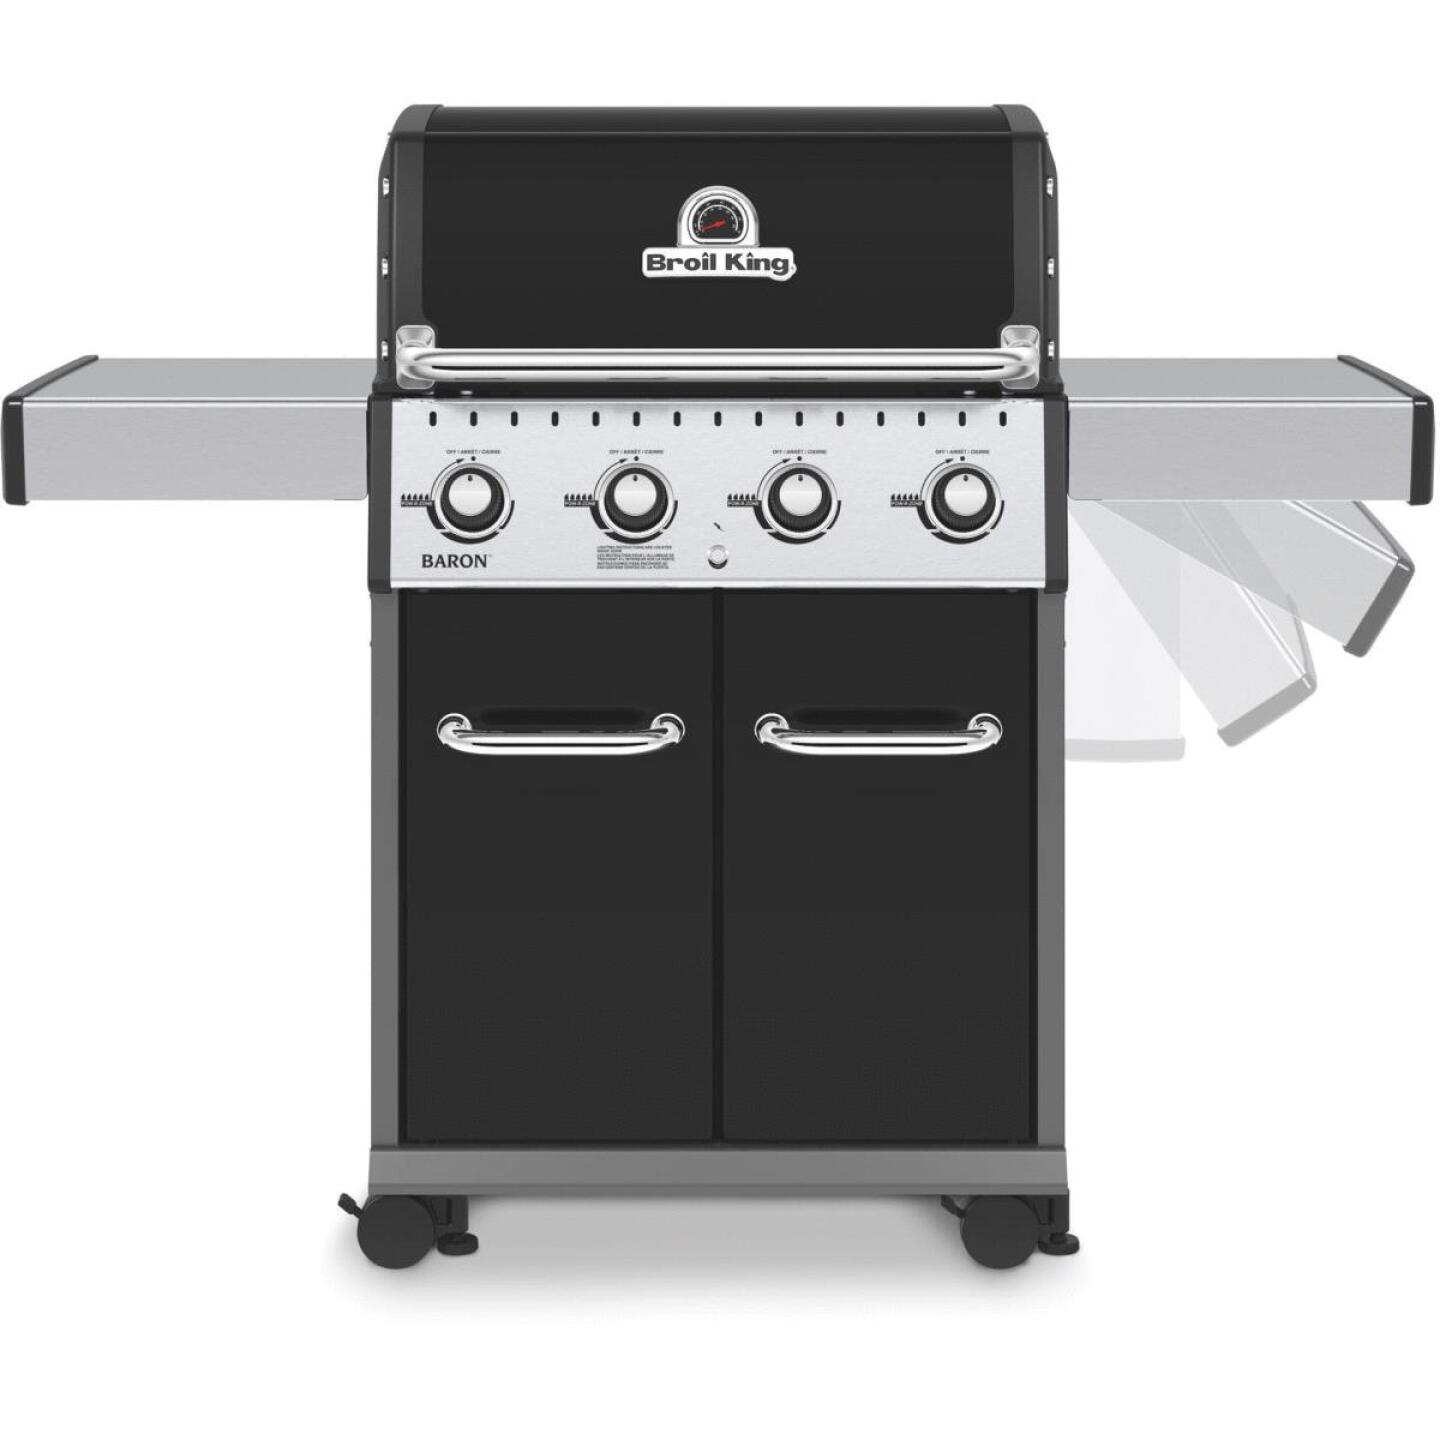 Broil King Baron 420 Pro Special Edition Black 4-Burner Stainless Steel 40,000 BTU LP Gas Grill Image 6